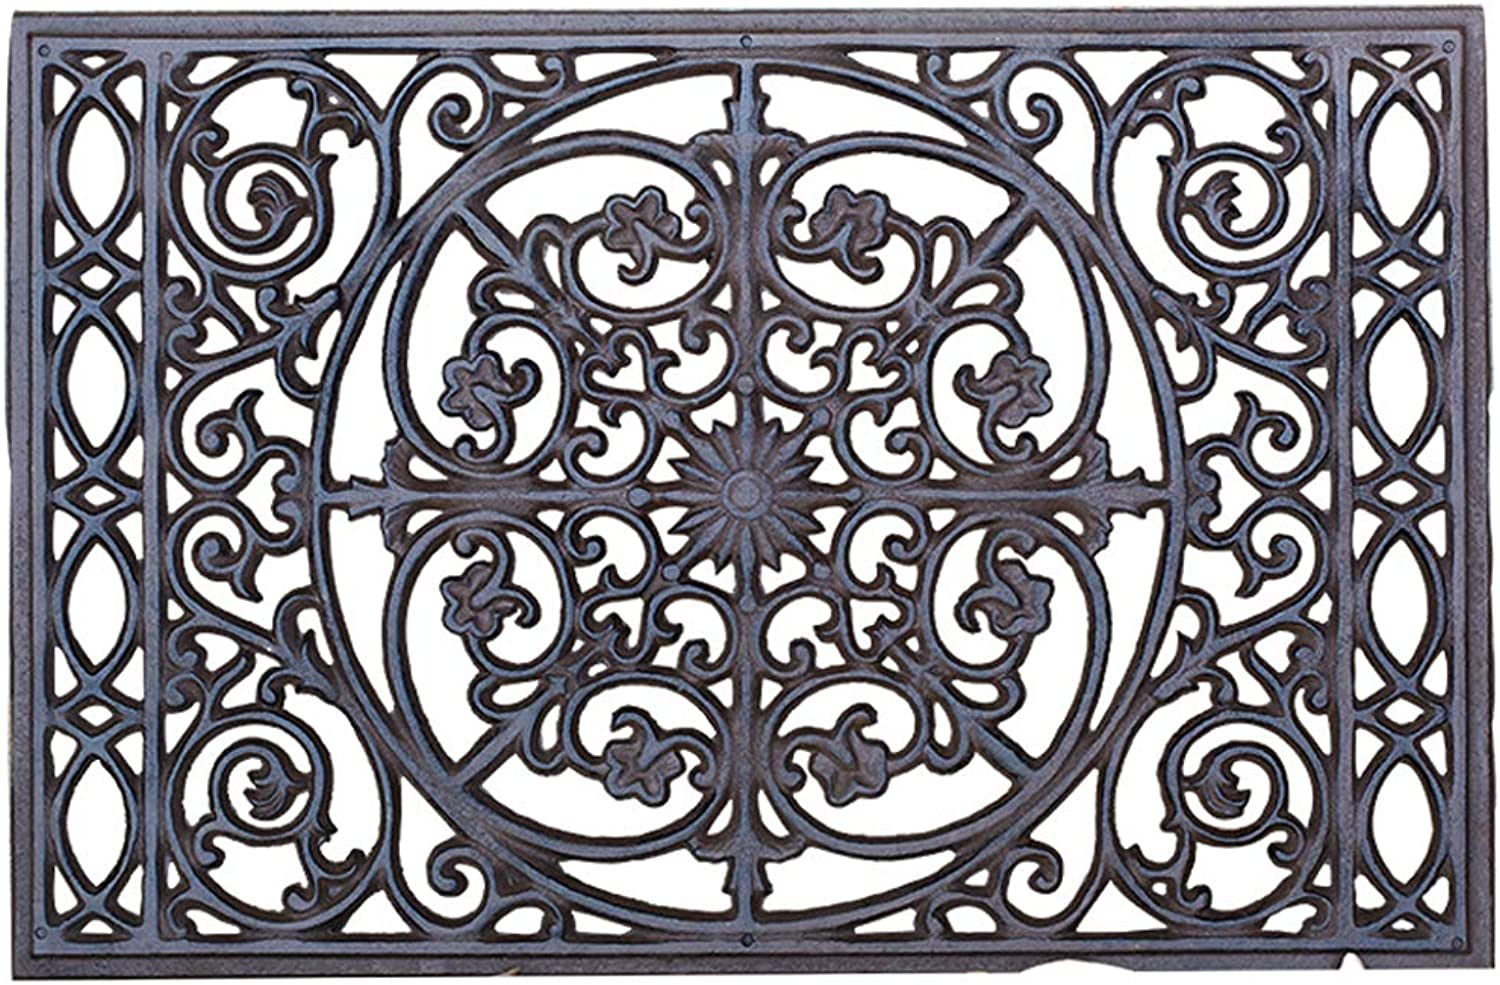 Sungmor Heavy Duty Cast Iron Doormat,22  x 14.4  Rectangle with Vintage & Rustic Pattern Design,Decorative Mat and shoes Scraper for Door Front Or Garden Path